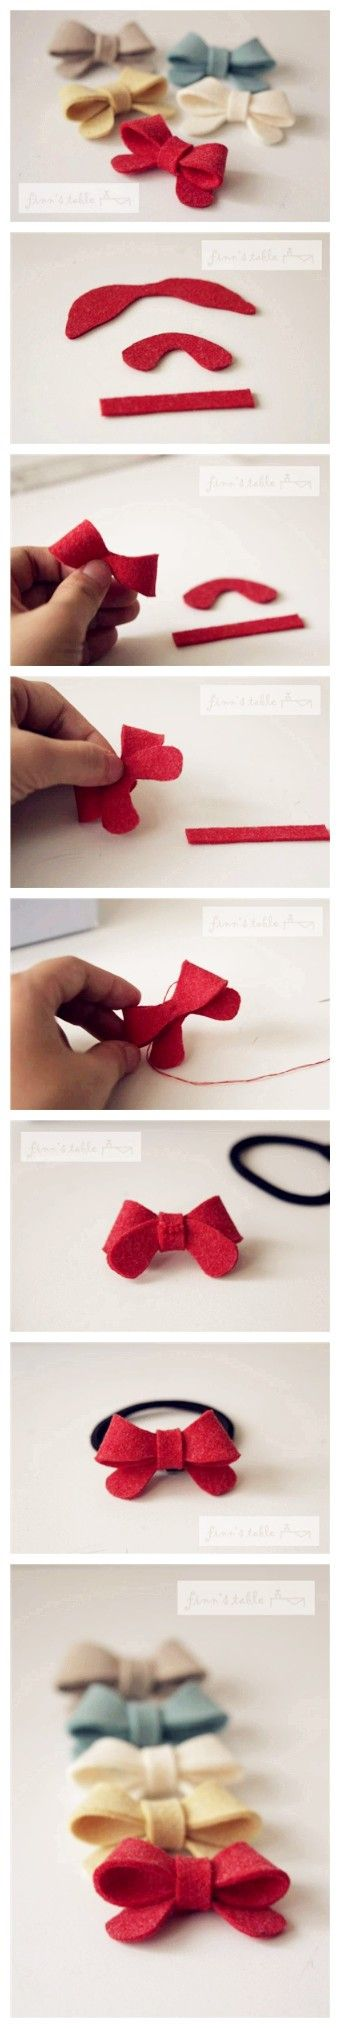 DIY felt bowsHairbows, Bow Tutorial, Bows Ties, Bows Tutorials, Hair Ties, Hair Bows, Felt Bows, Diy, Crafts